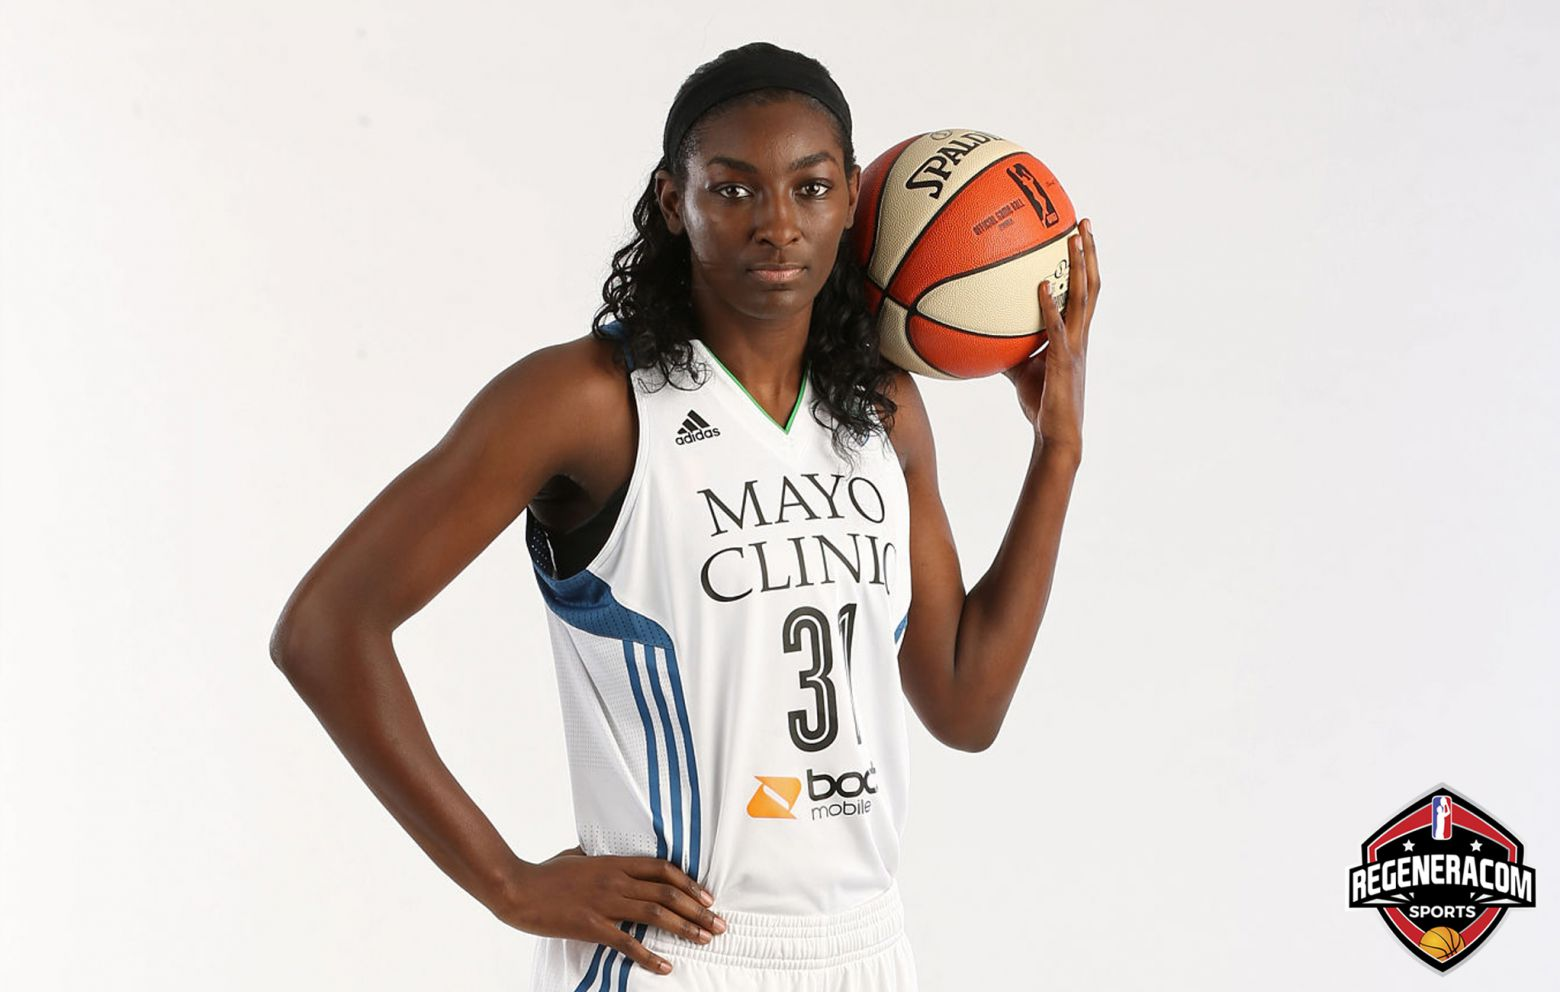 ASIA TAYLOR has signed with Regeneracom Sports